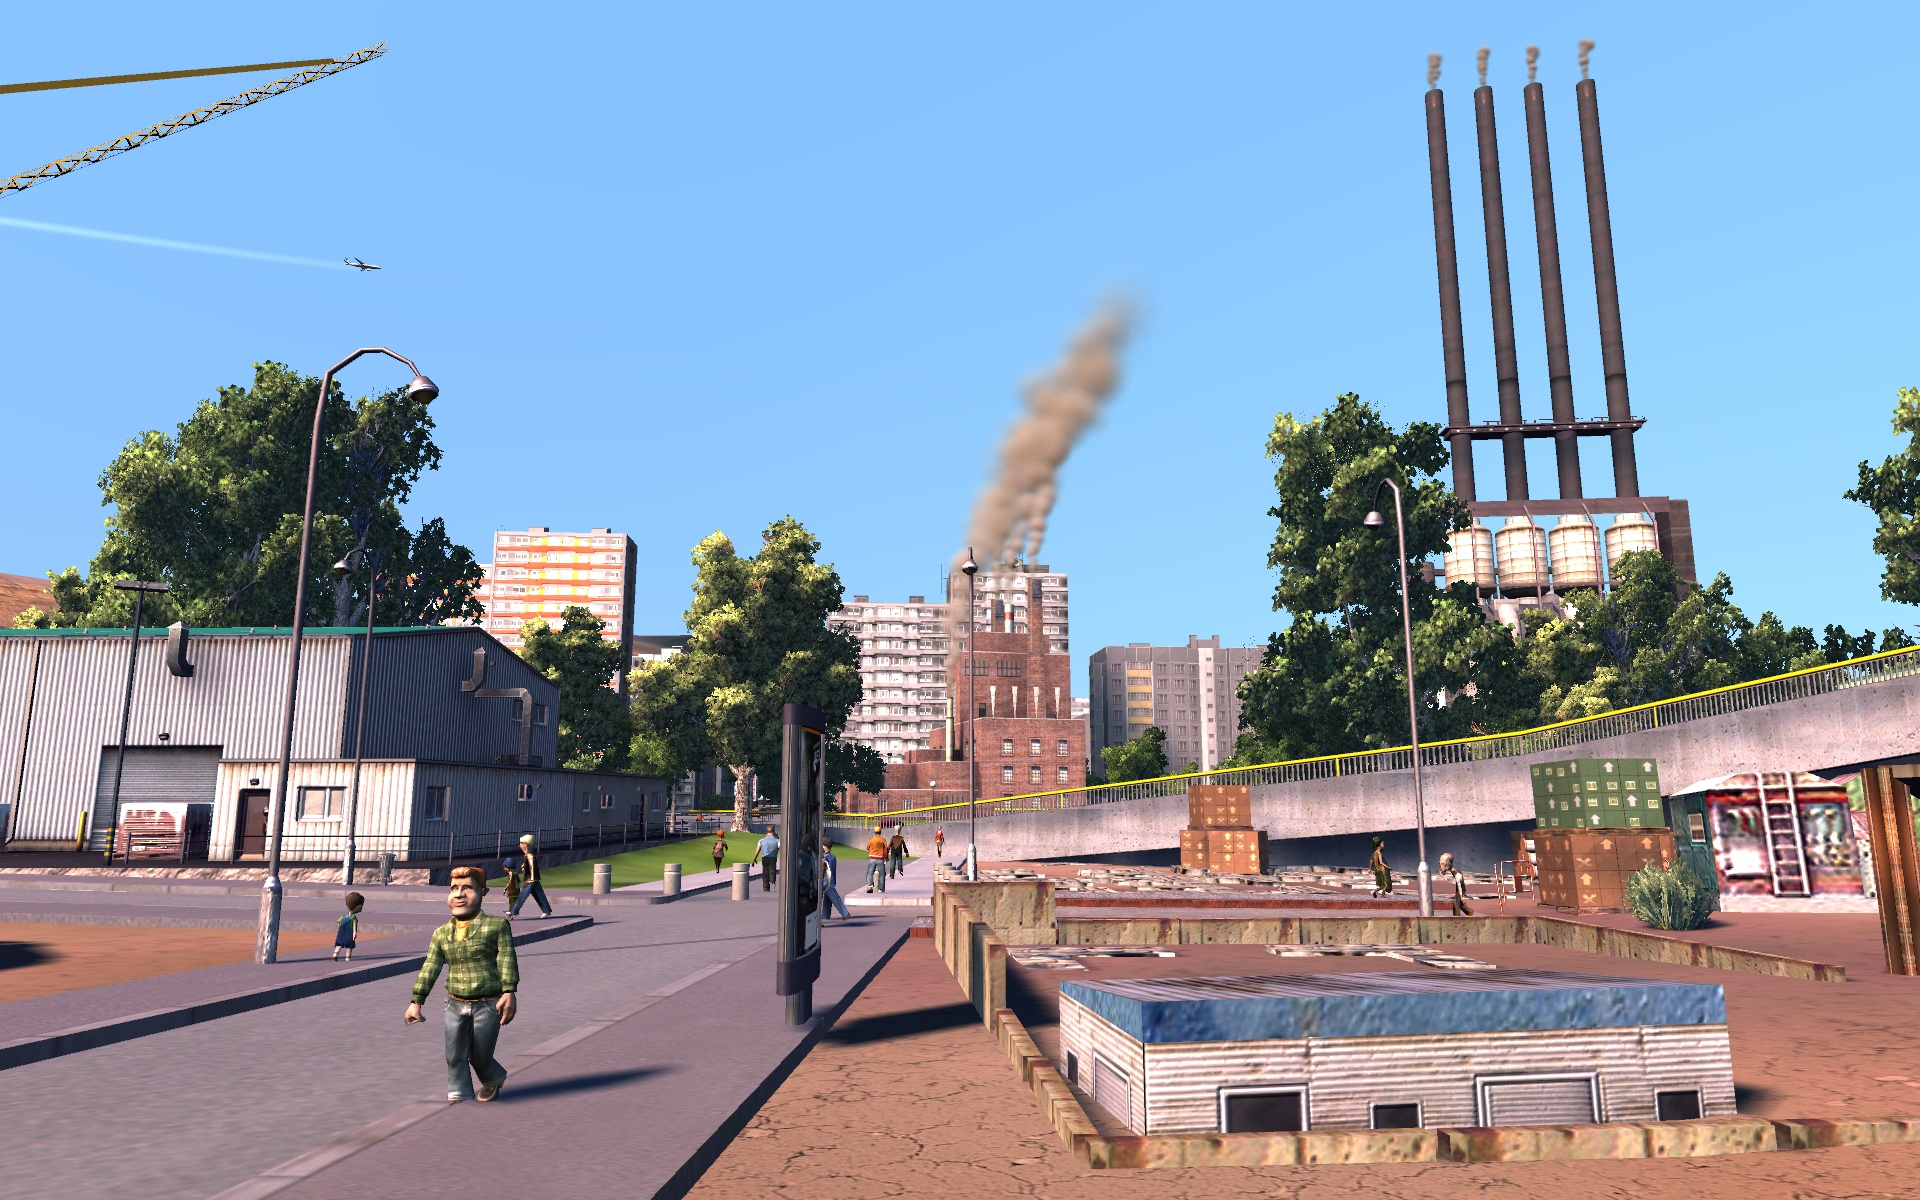 cxl_screenshot_yekavalov_113.jpg